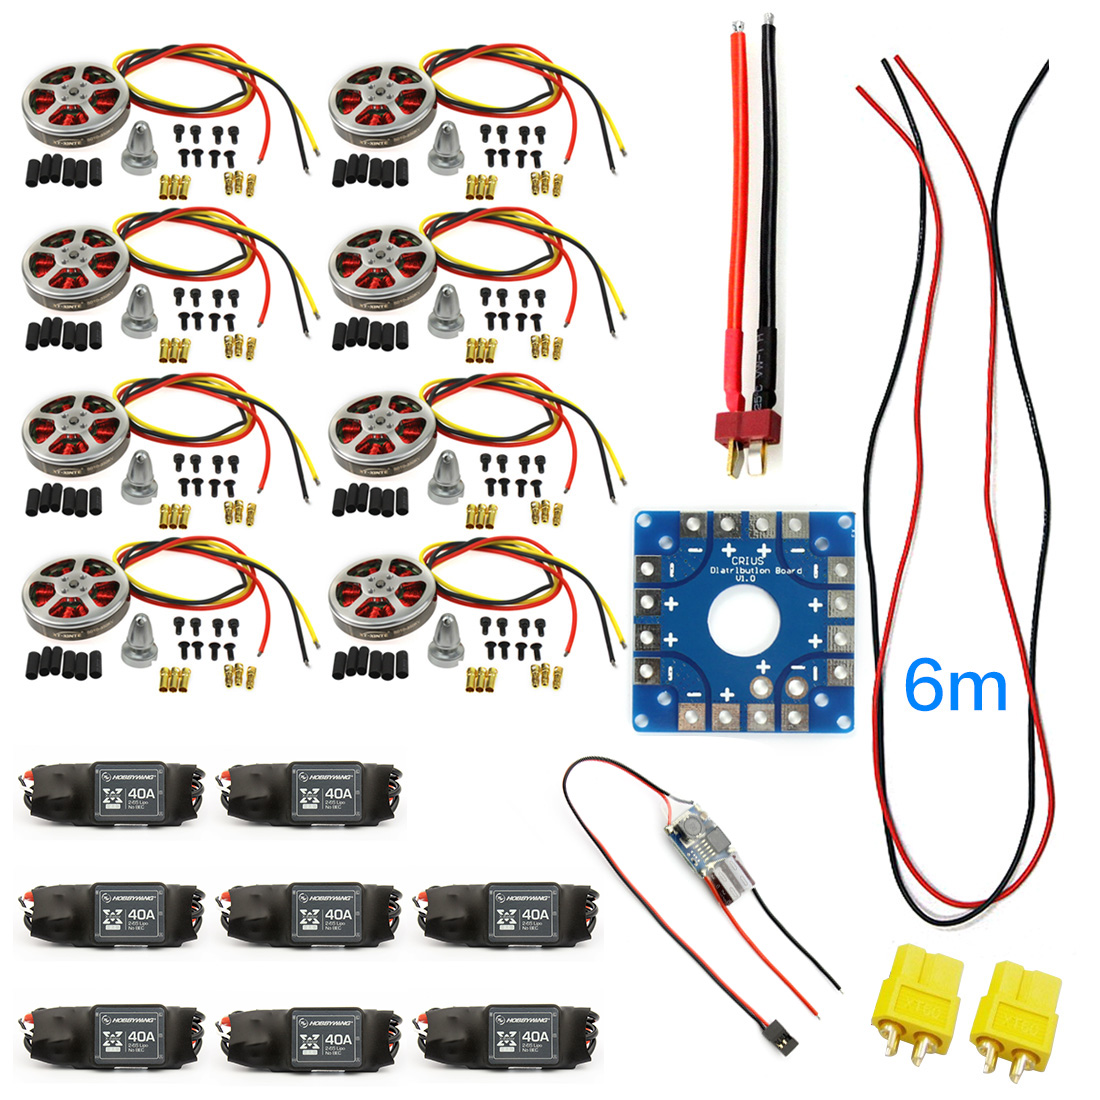 F04997-F JMT Assembled Kit : 40A ESC Controller 350KV Motor Connection Board Wire for 8-axle Drone Multi Rotor Hexacopter FS 76zy01 mig motor wire feed motor wire feeder motor dc24 1 8 18m min 1pk